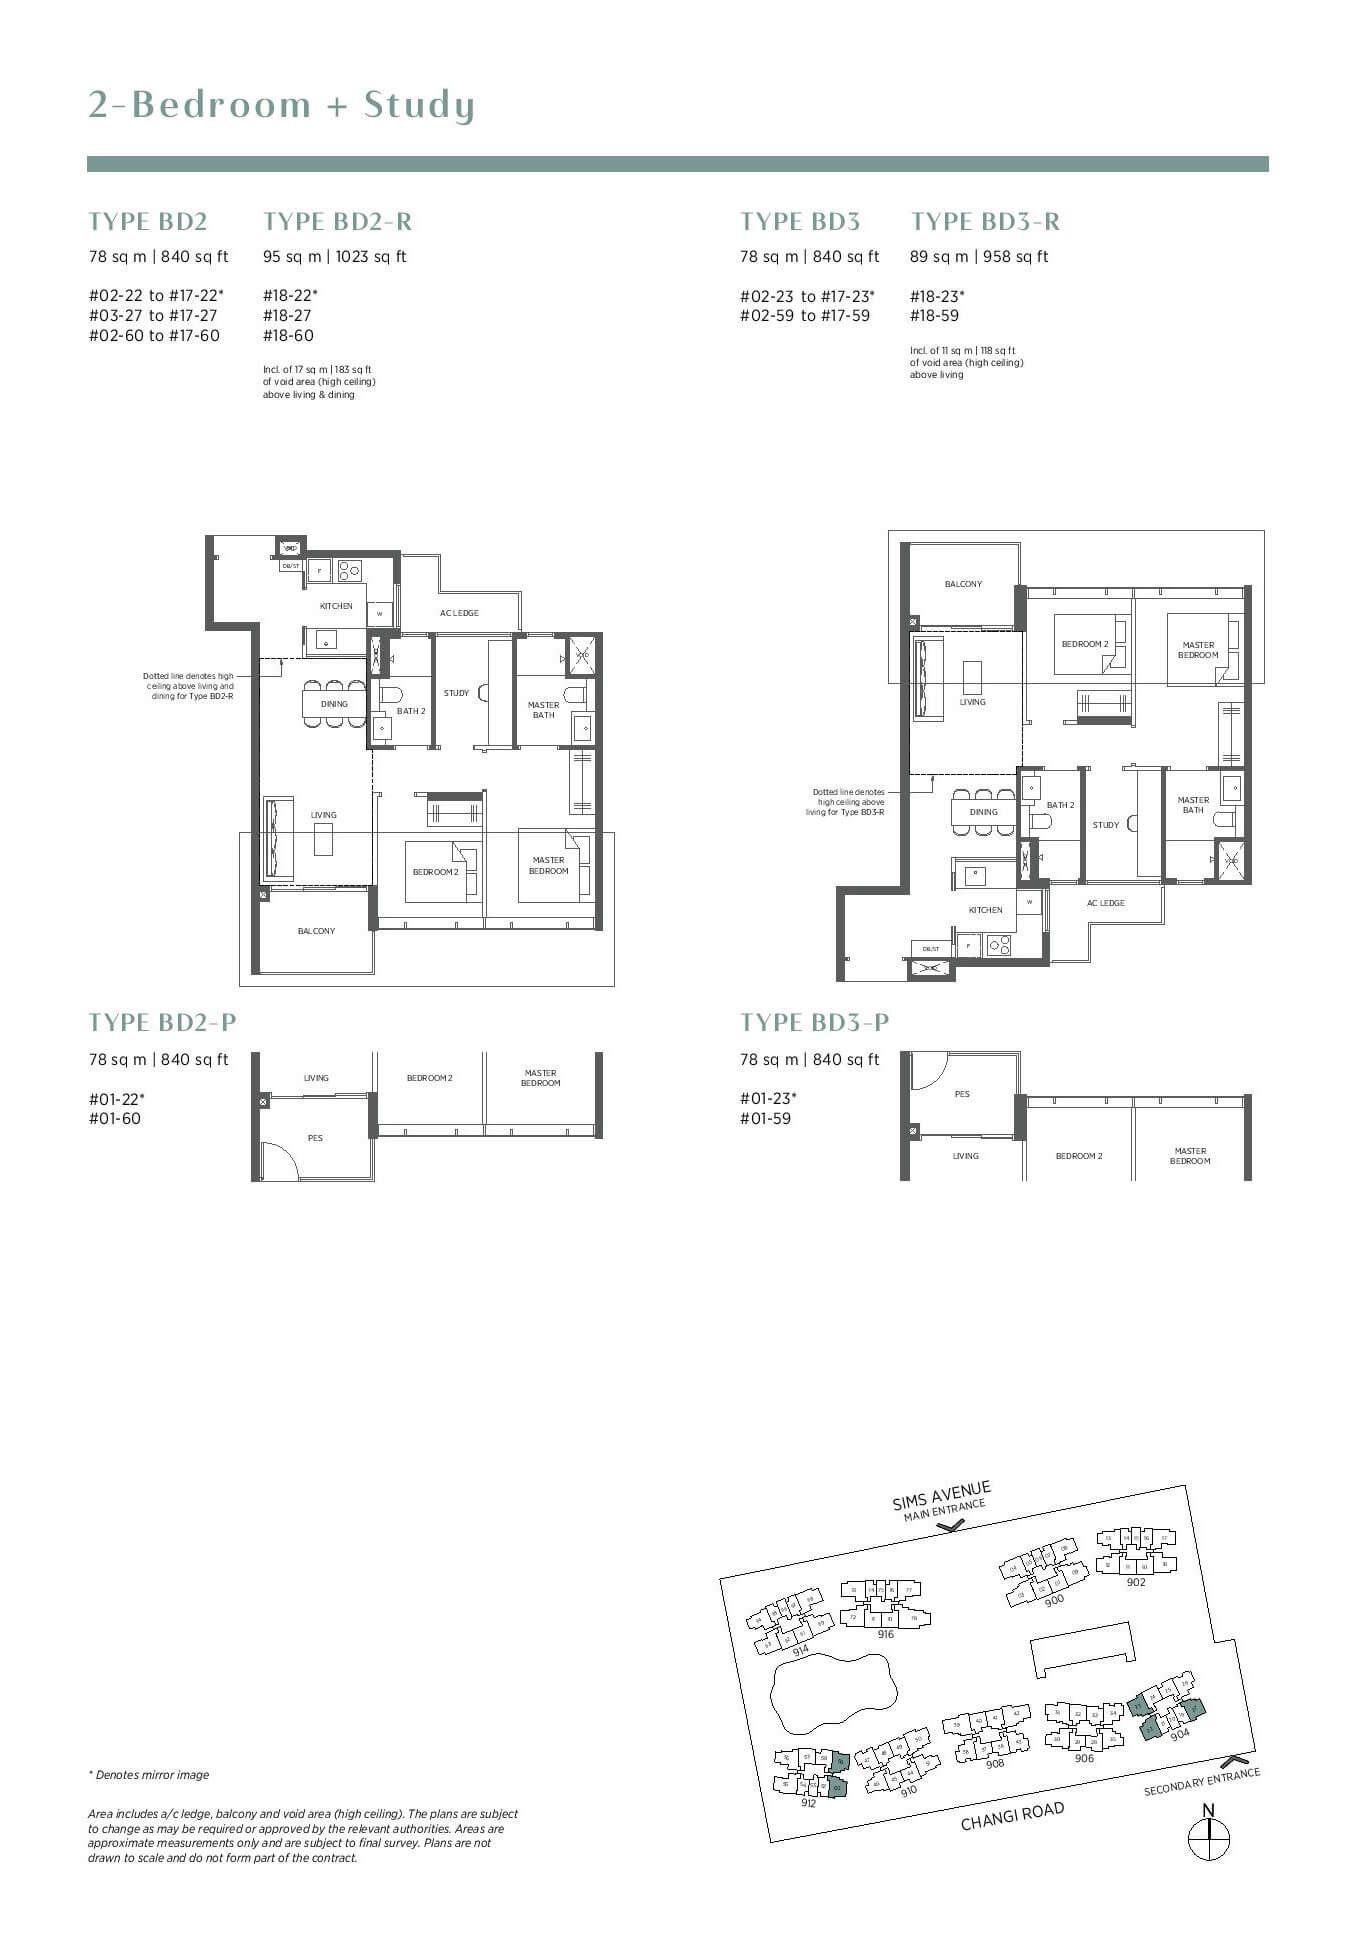 parc esta floor plan 2 bedroom study